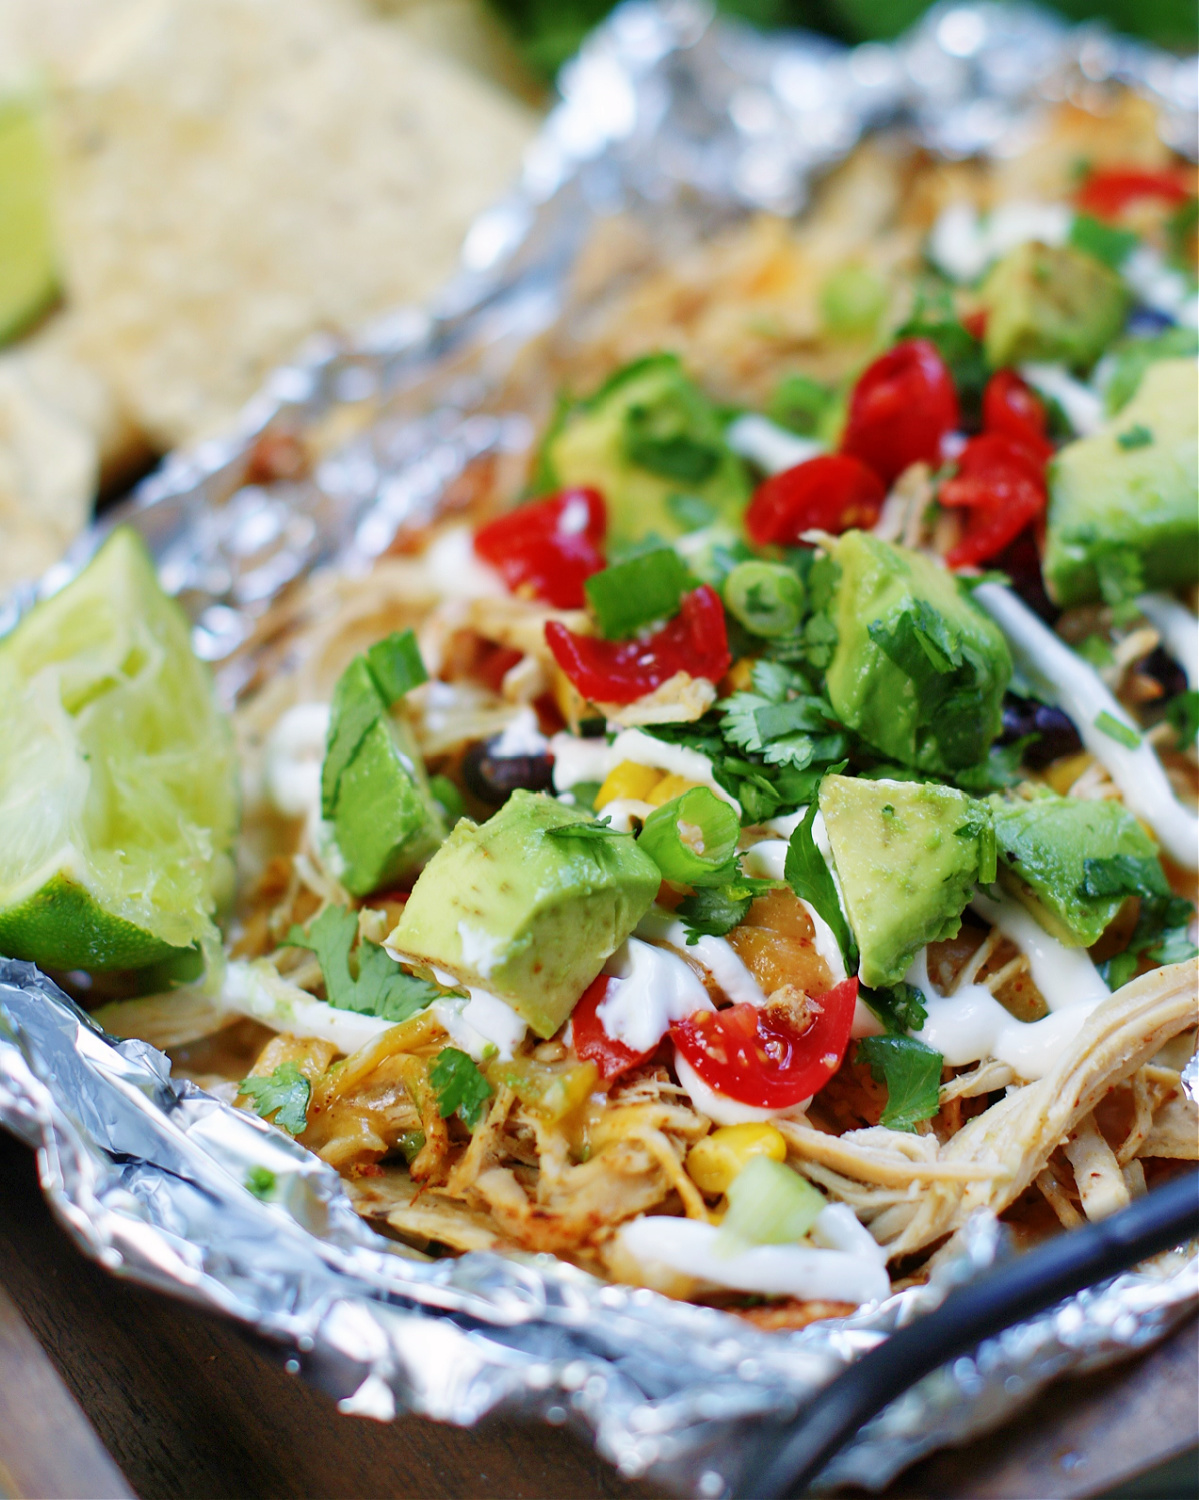 showing the toppings on chicken nachos made in a foil packet